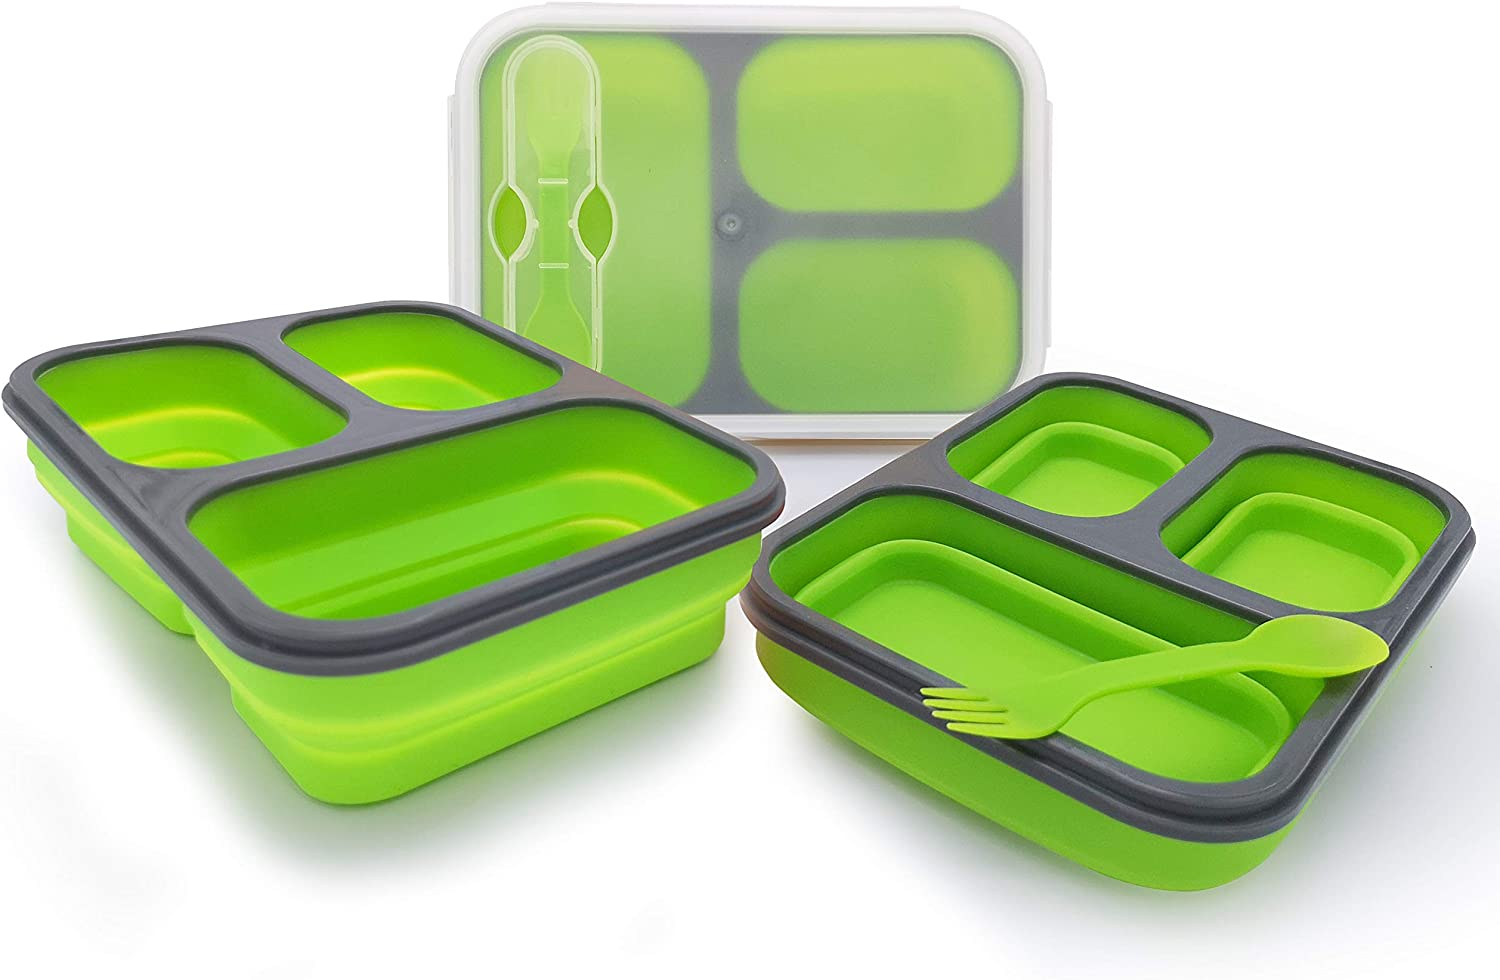 Exclusivo Bolsillo Bento Lunch Box for Women Men & Kids With Spoon & Fork,BPA Free,Collapsible and Leakproof Food Grade Silicone Food Storage Containers with 3 Compartments (Green,One Container)